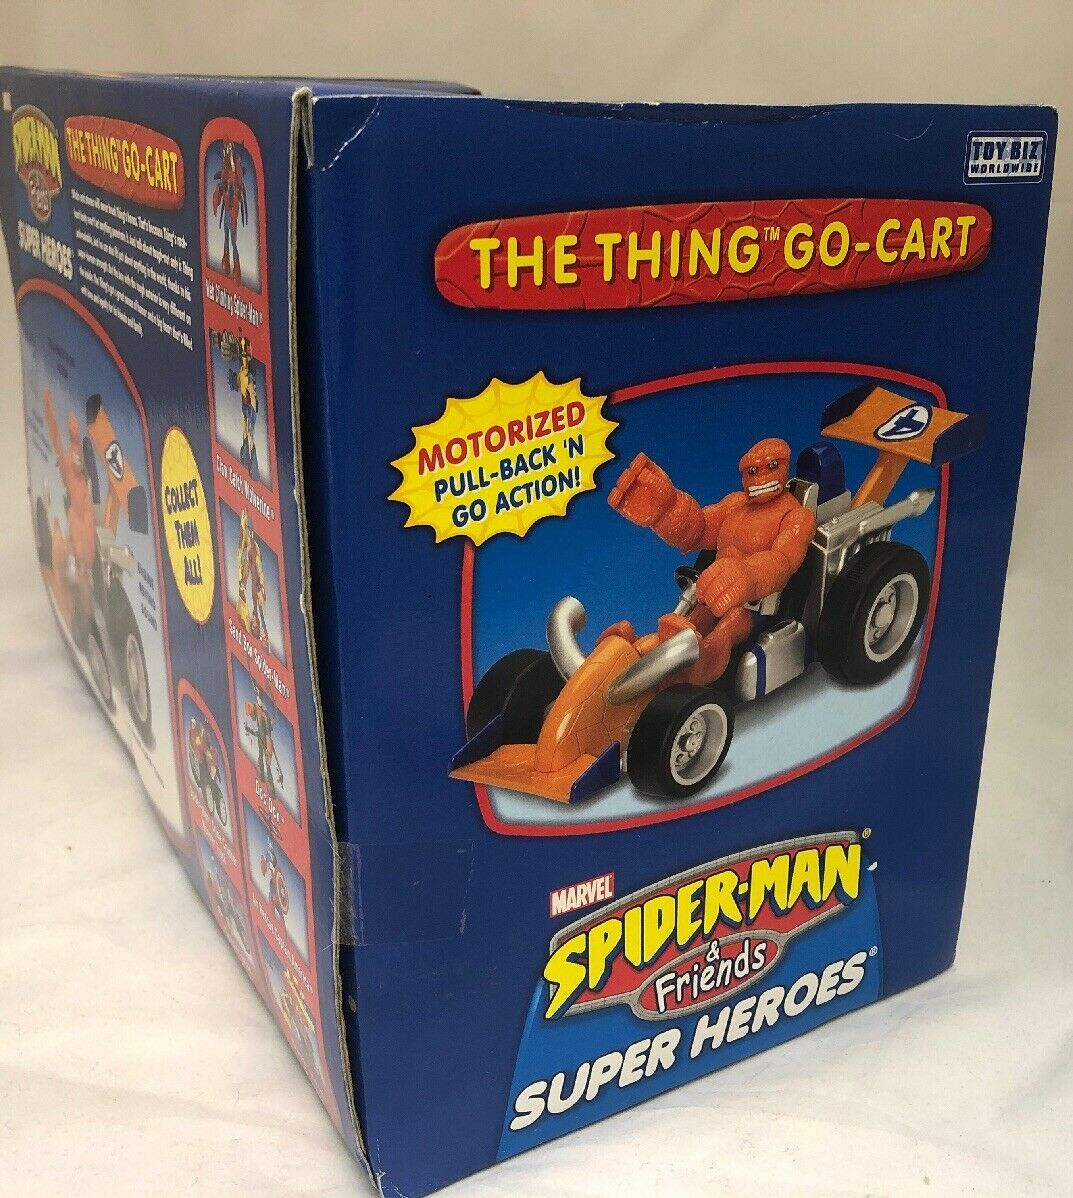 Marvel Spider-Man & Friends The Thing You Go- Cart Motorized Pull Back Go Action image 7